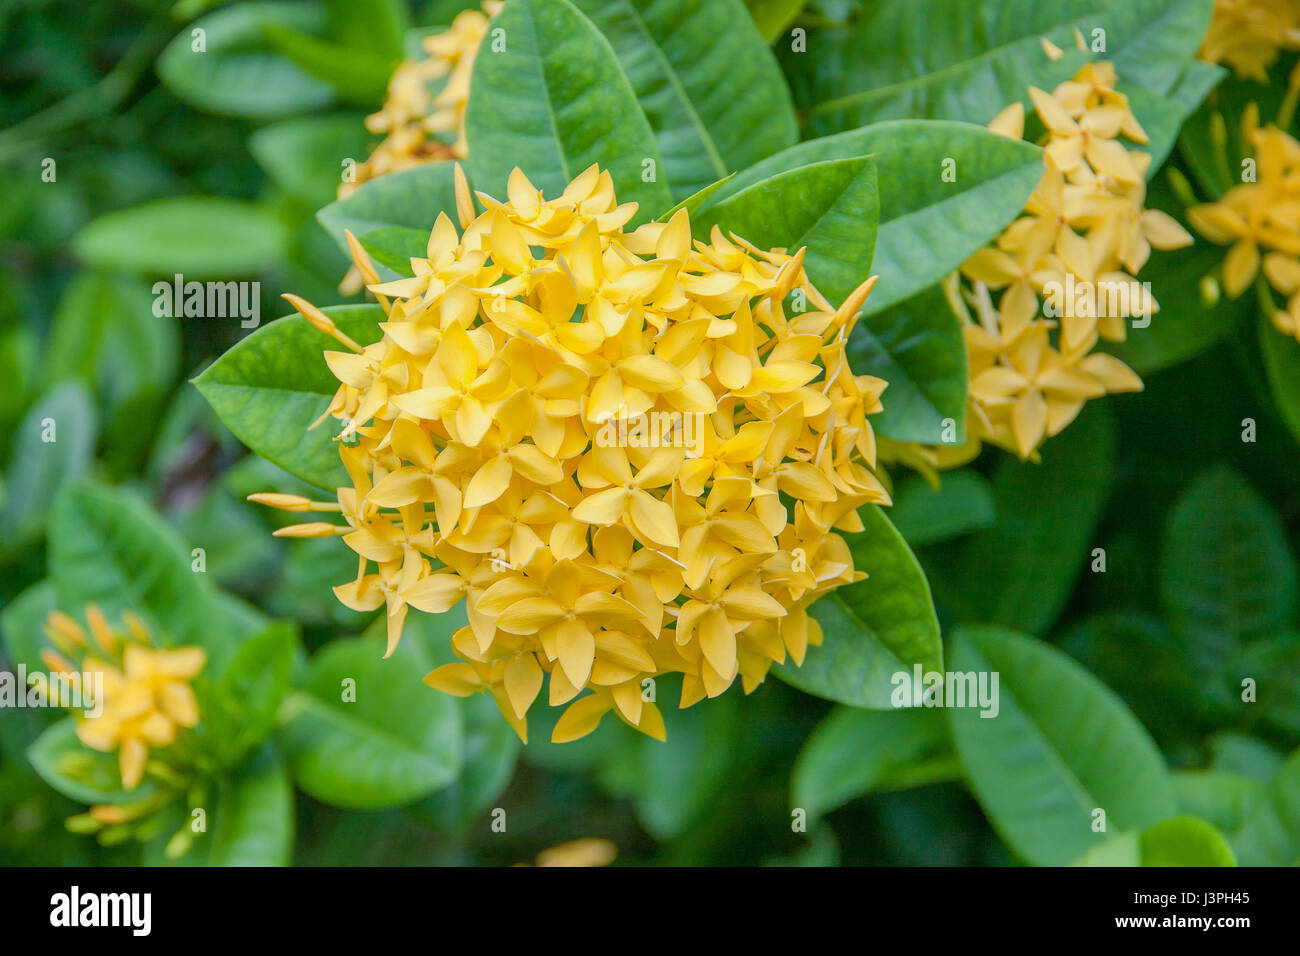 Closeup west indian jasmine flowers stock photos closeup west panicle of yellow ixoras west indian jasmine flower on its plant stock image izmirmasajfo